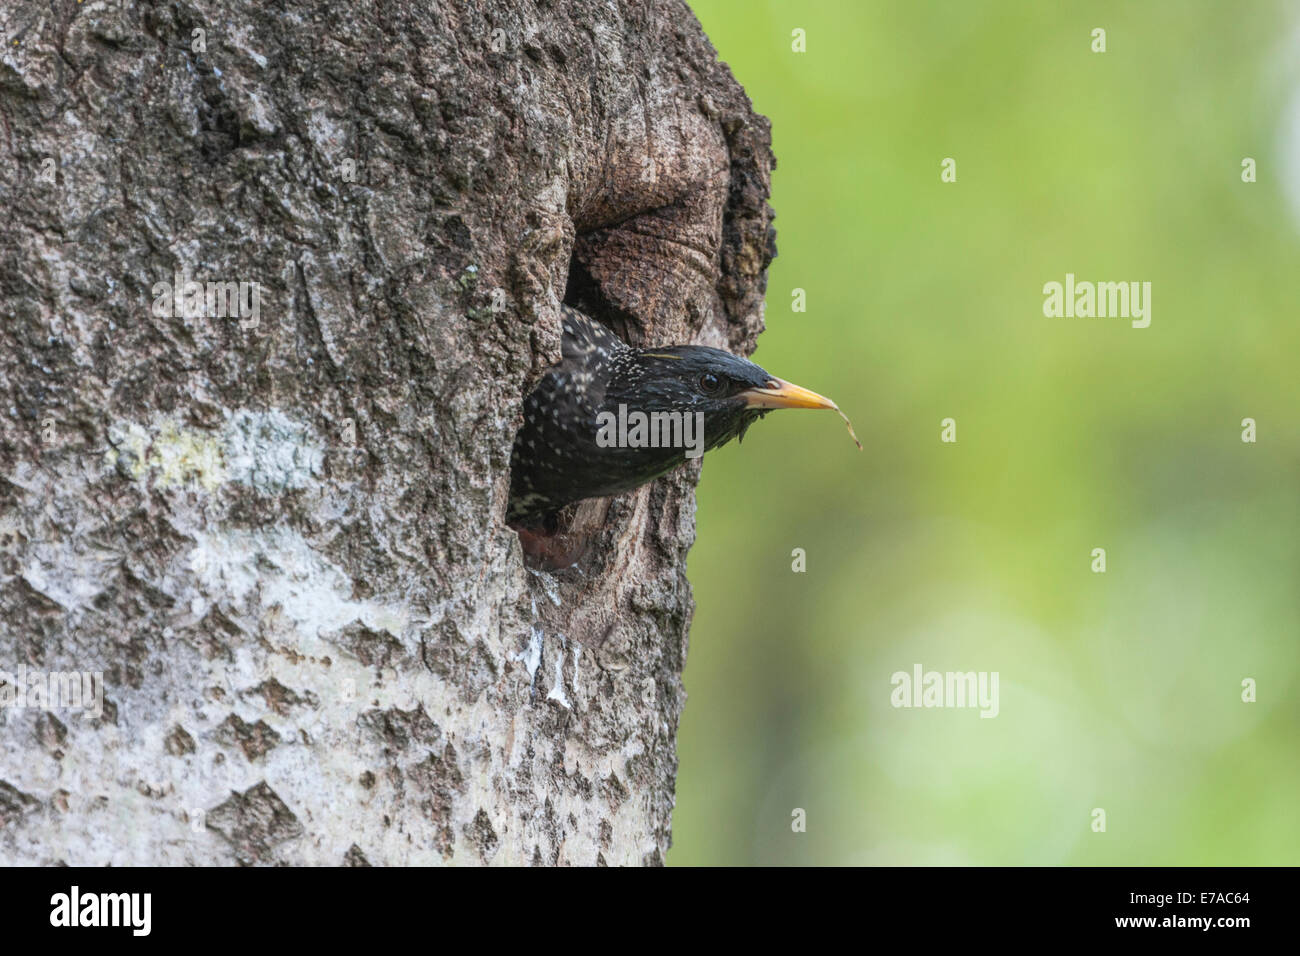 Starling, Sturnus vulgaris, peeking out from his nest in a birch tree - Stock Image